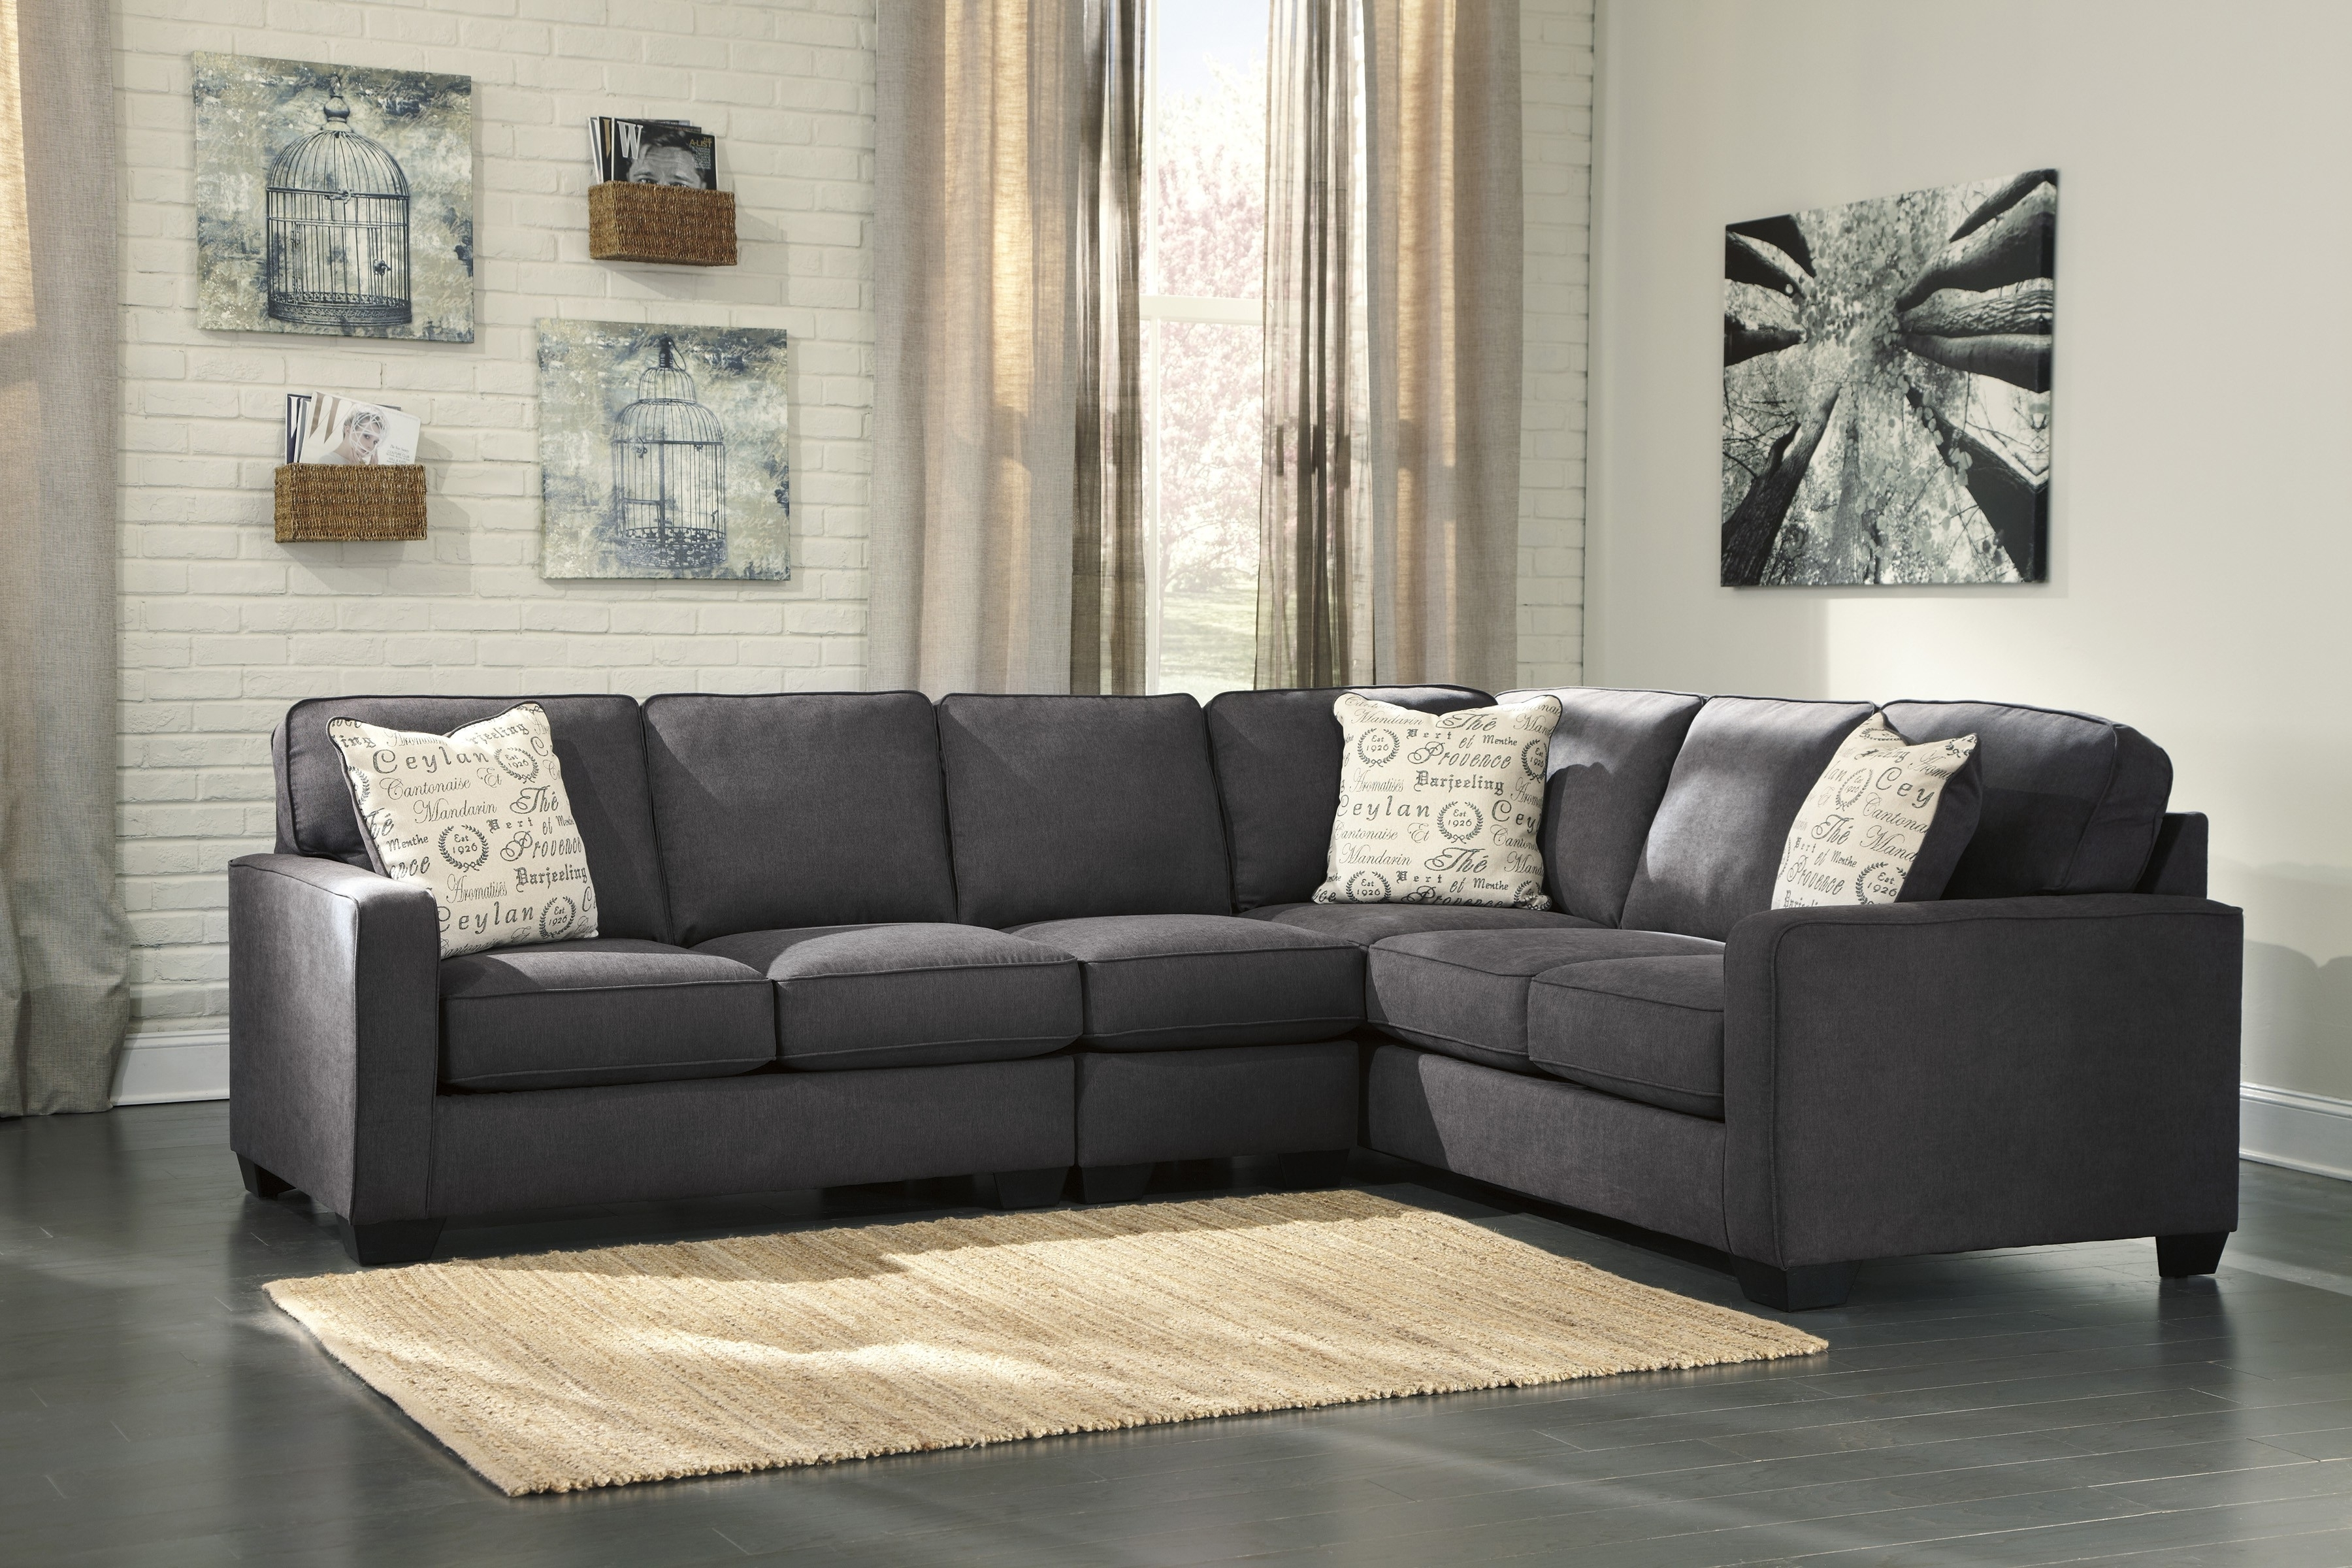 2019 Alenya Charcoal 3 Piece Sectional Sofa For $ (View 7 of 20)